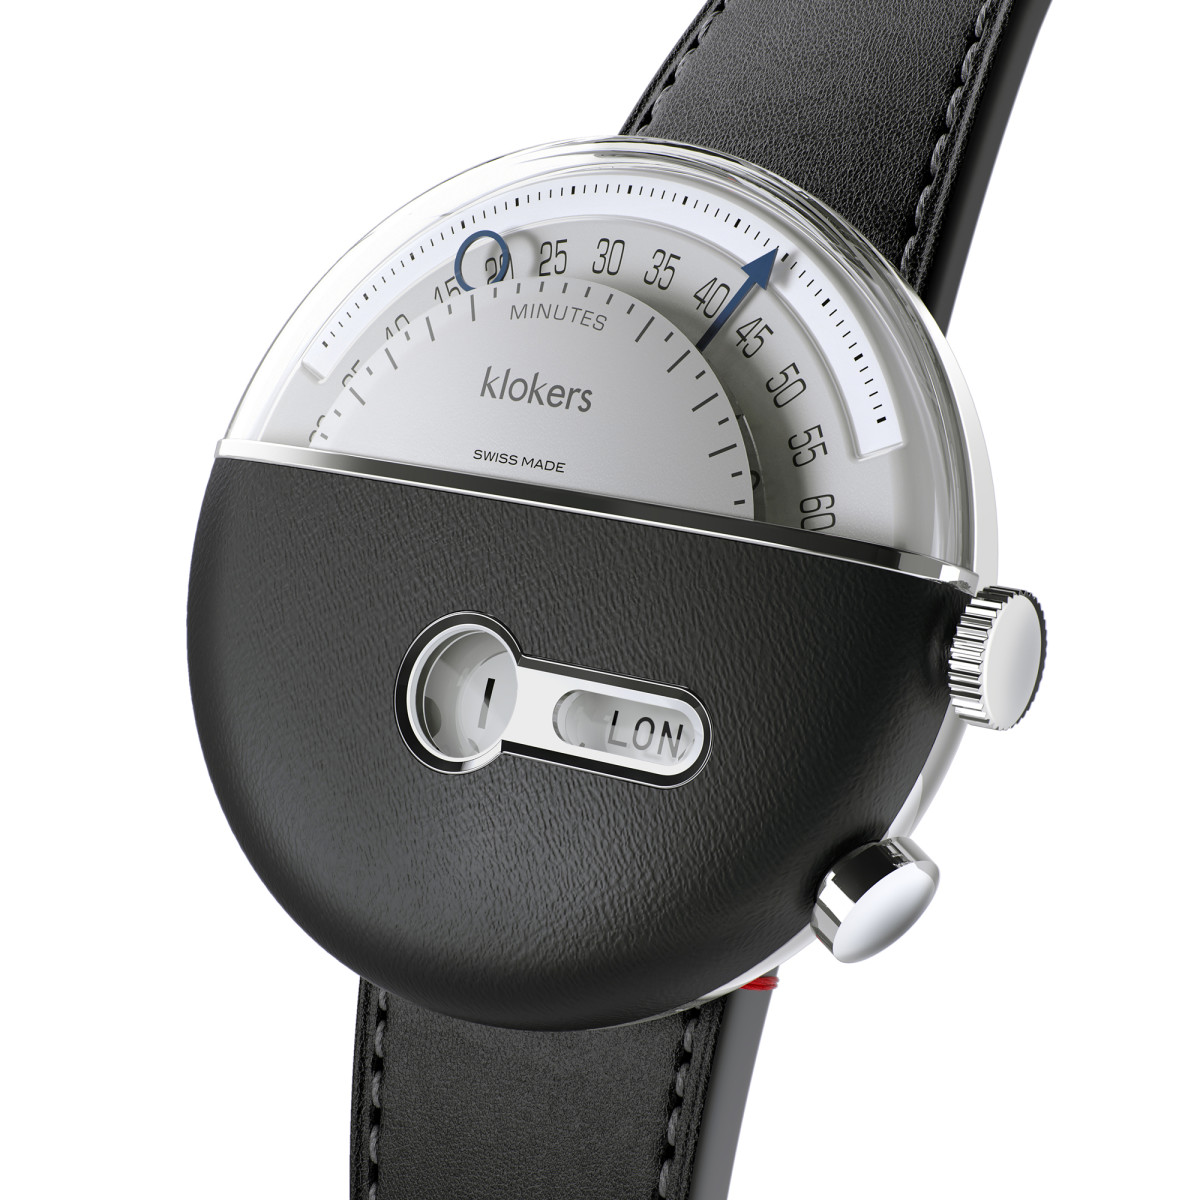 The Klokers KLOK-2, a unique take on the travel watch